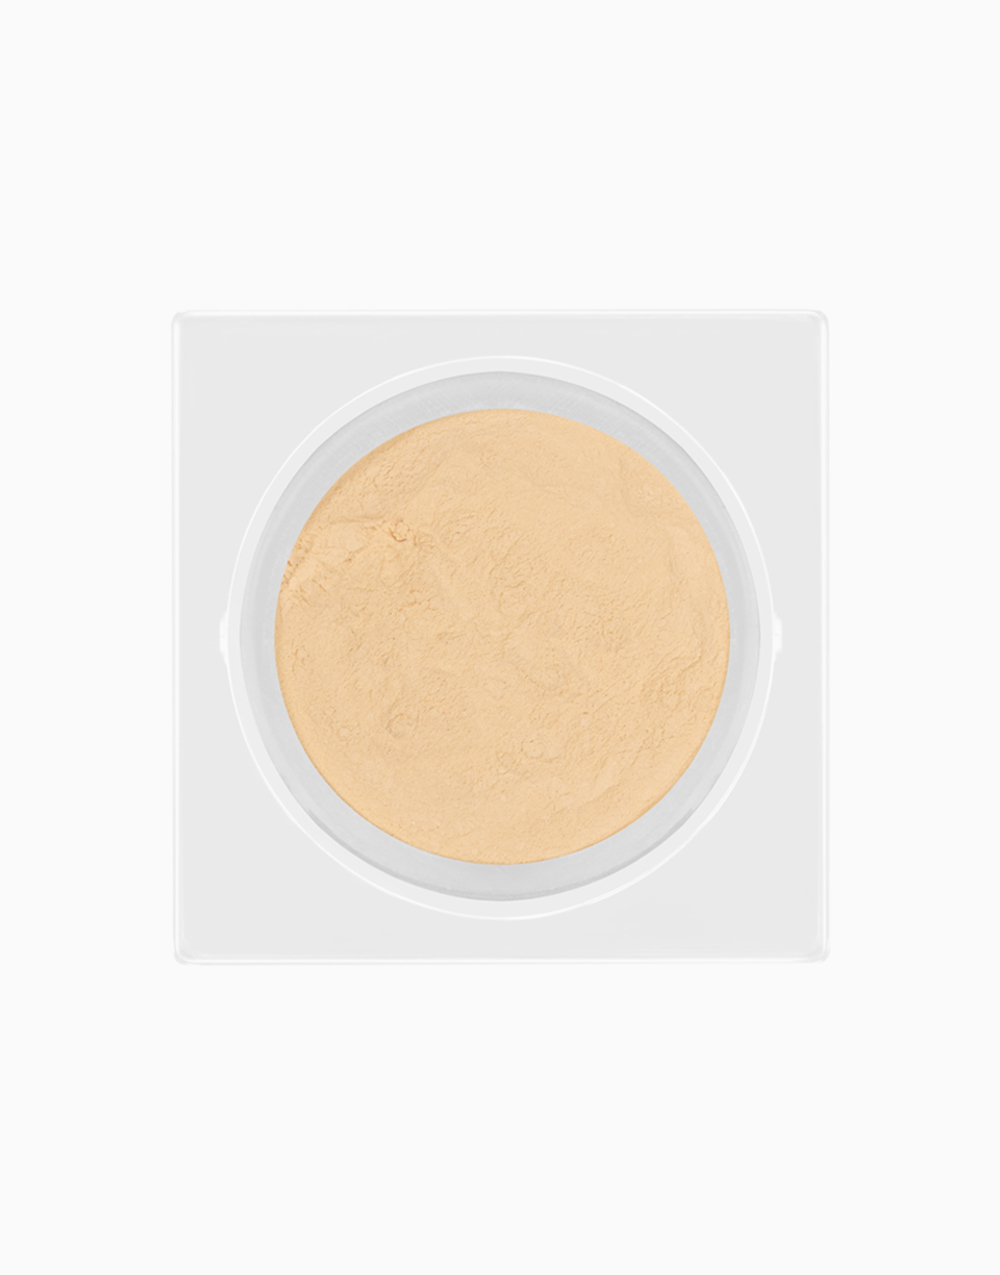 Baking Powder by KKW Beauty   #3 Translucent Pale Yellow